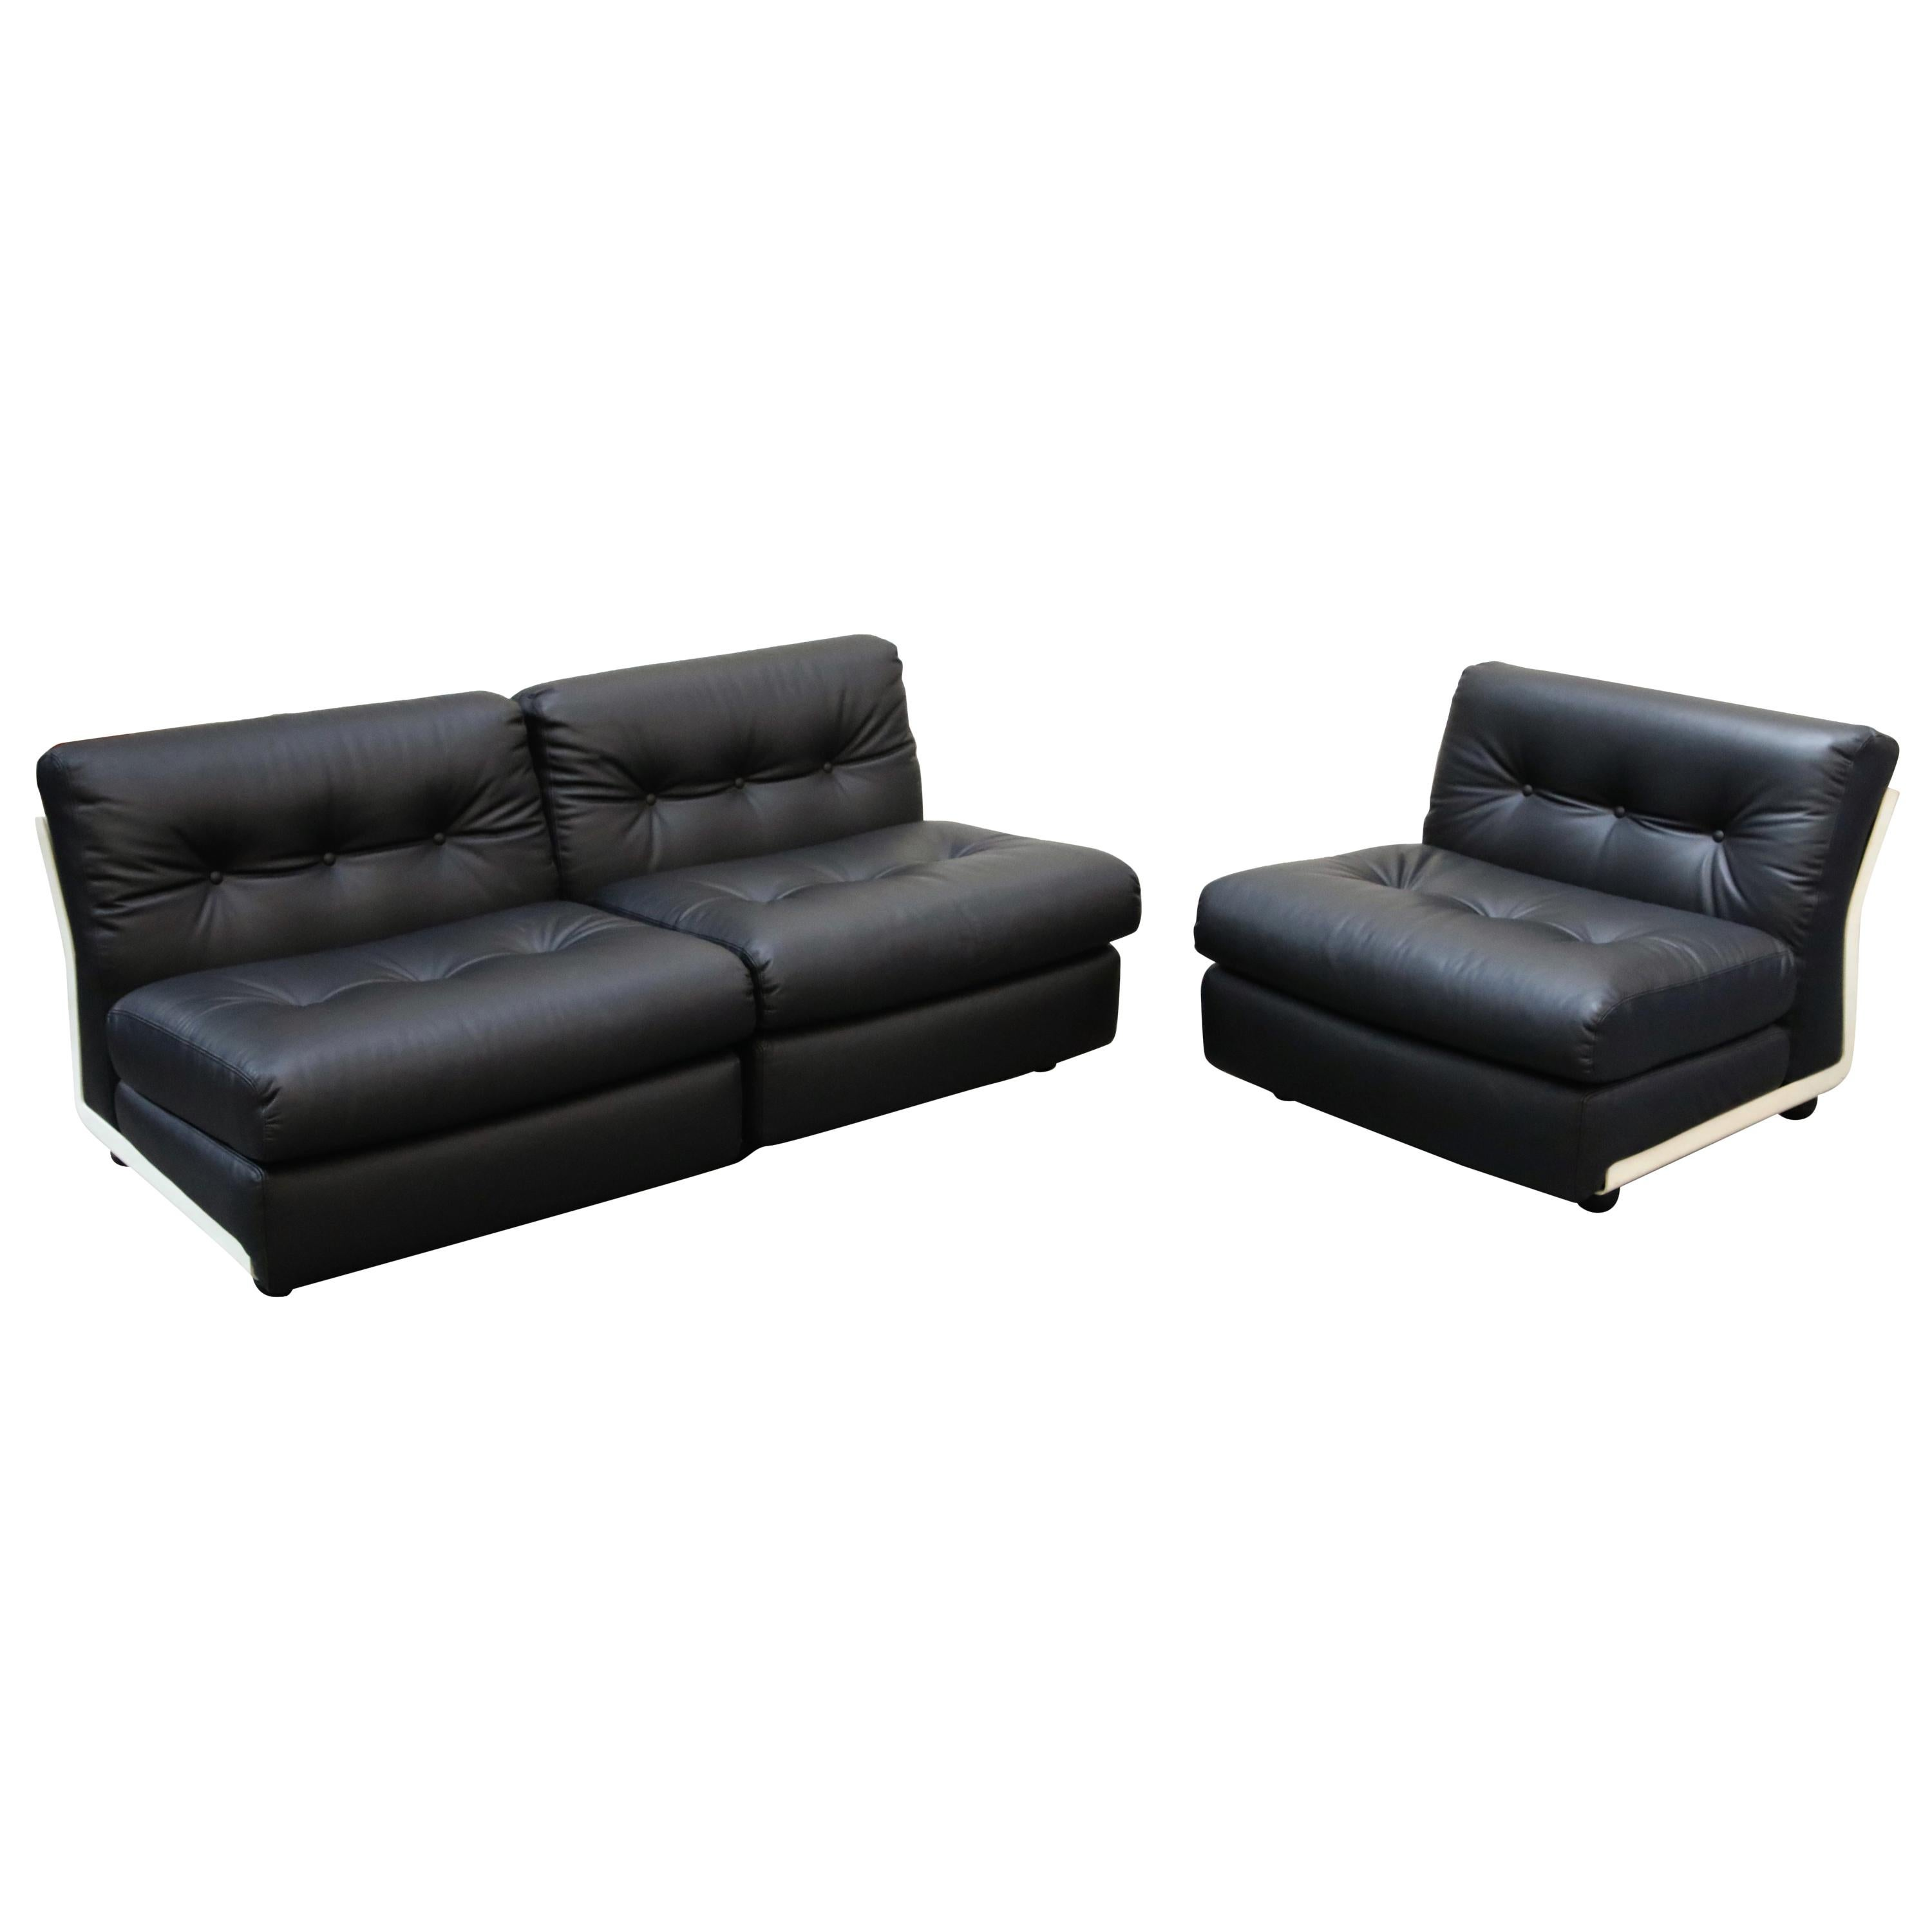 'Amanta' Sectional Lounges by Mario Bellini for C&B Italia, circa 1966, Signed